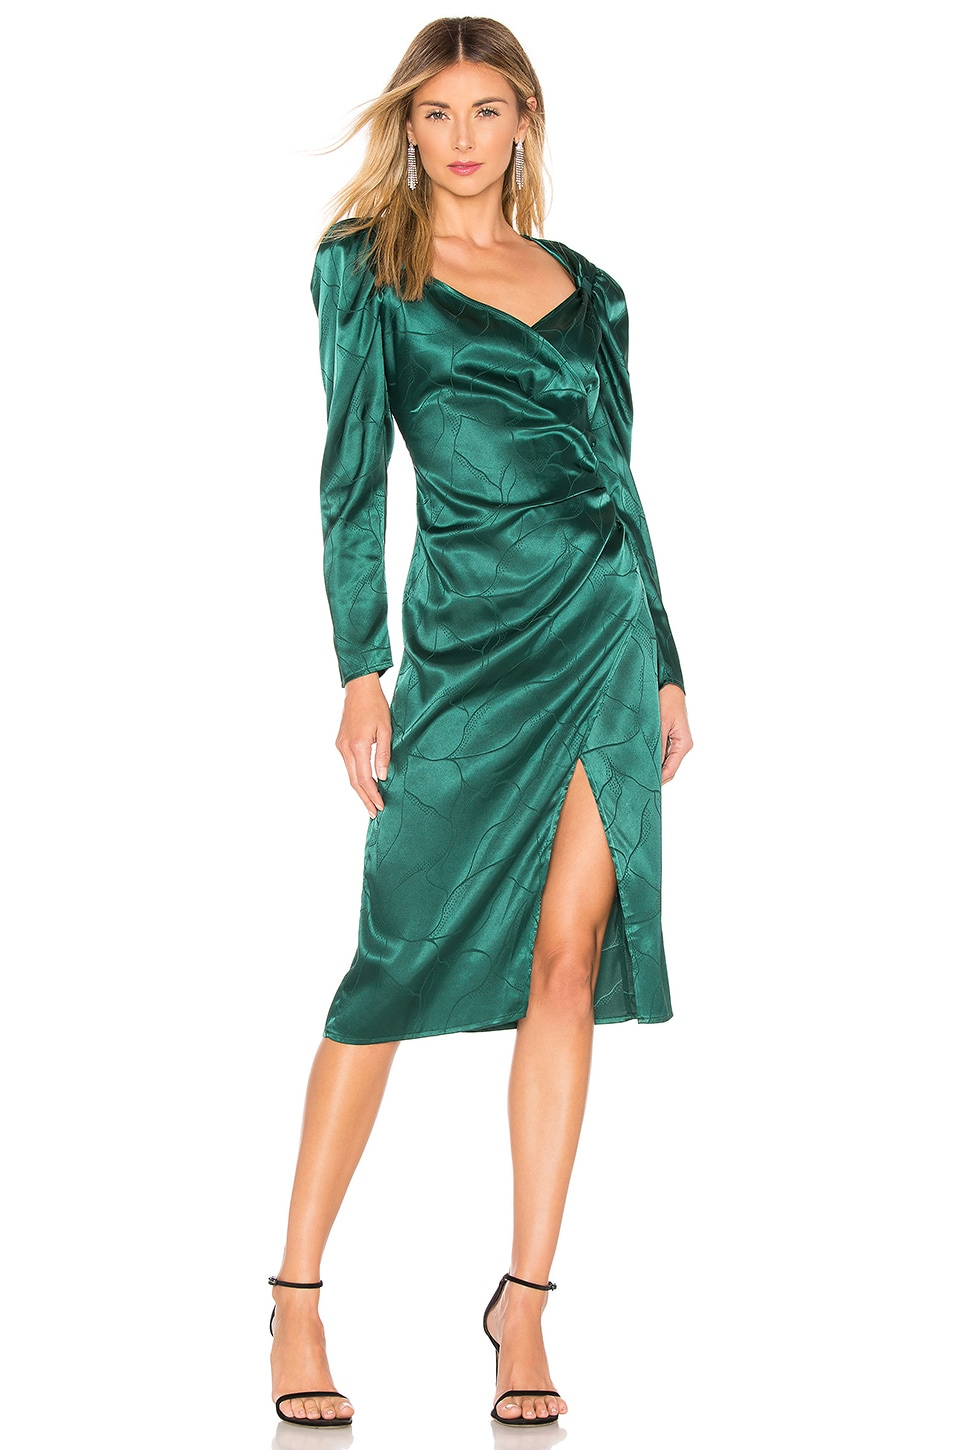 L'Academie The Cindy Midi Dress in Rainforest Green